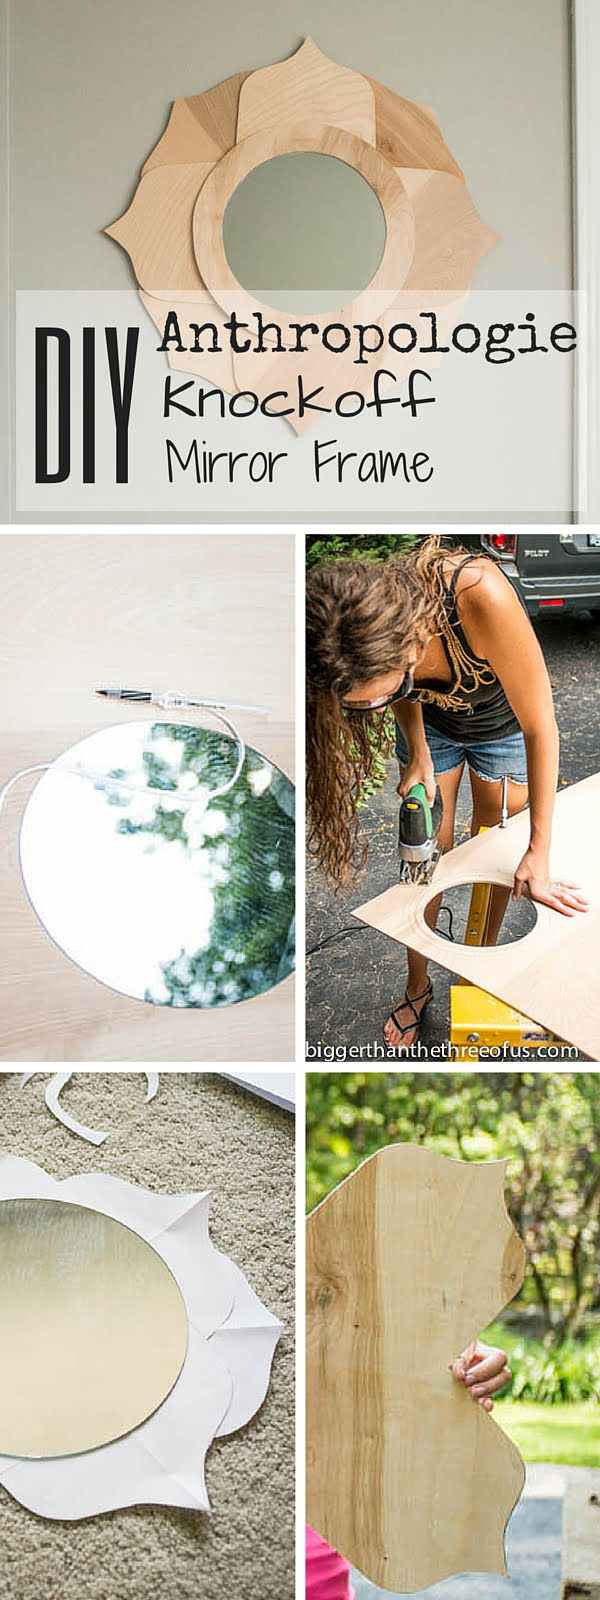 Check out the tutorial:  Anthropologie Knockoff Mirror Frame